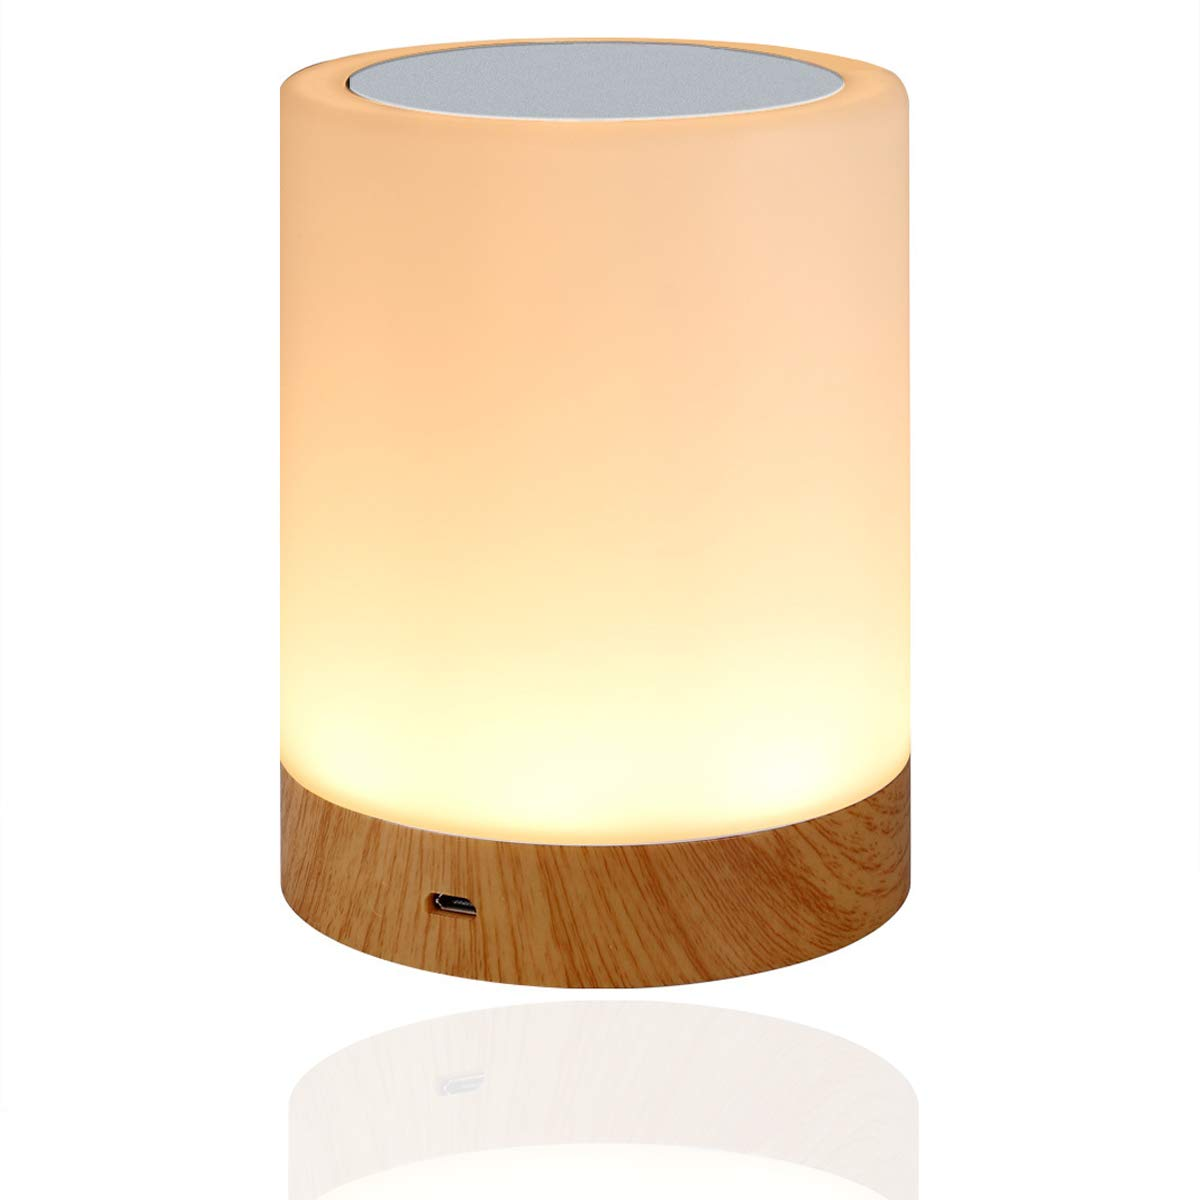 Aisuo Touch Control Bedside Lamp, Night Light with Dimmable Function, Rechargeable Lithium Internal Battery, 2800K - 3100K Warm White Light & Adjustable Brightness, the Best Gift for Kids and Children.